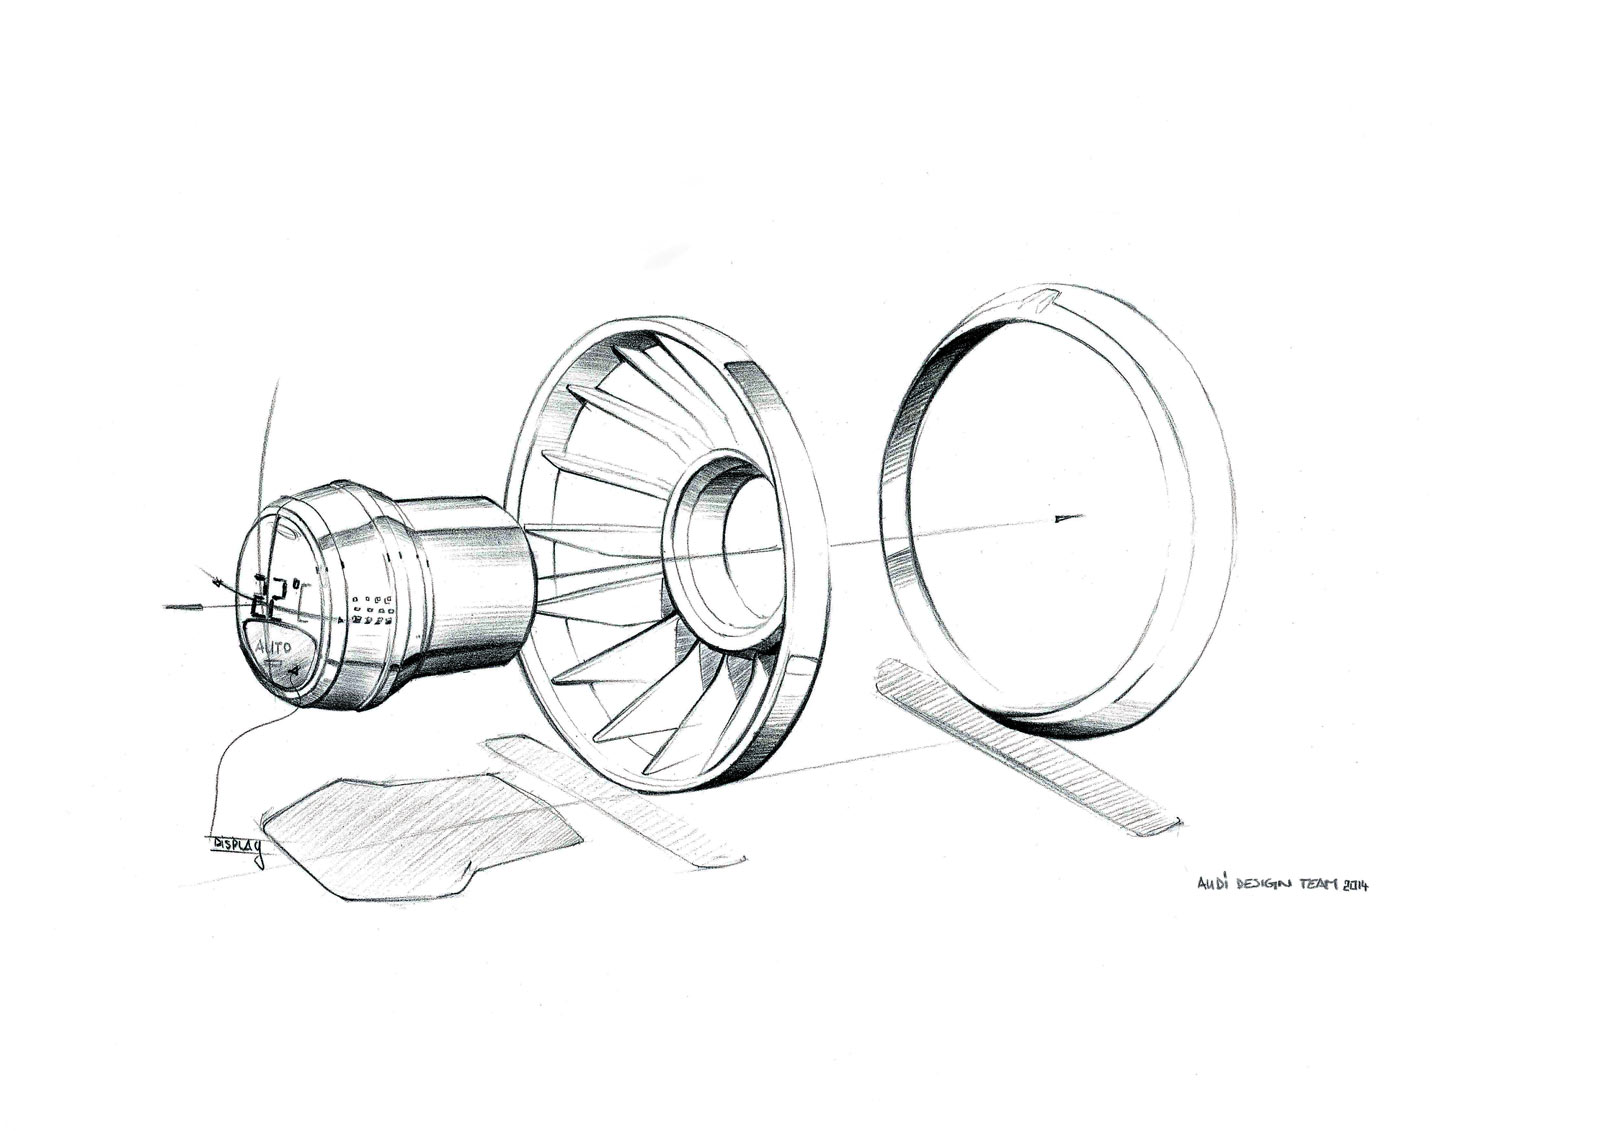 Audi Tt Offroad Concept Interior Design Sketch Air Vents